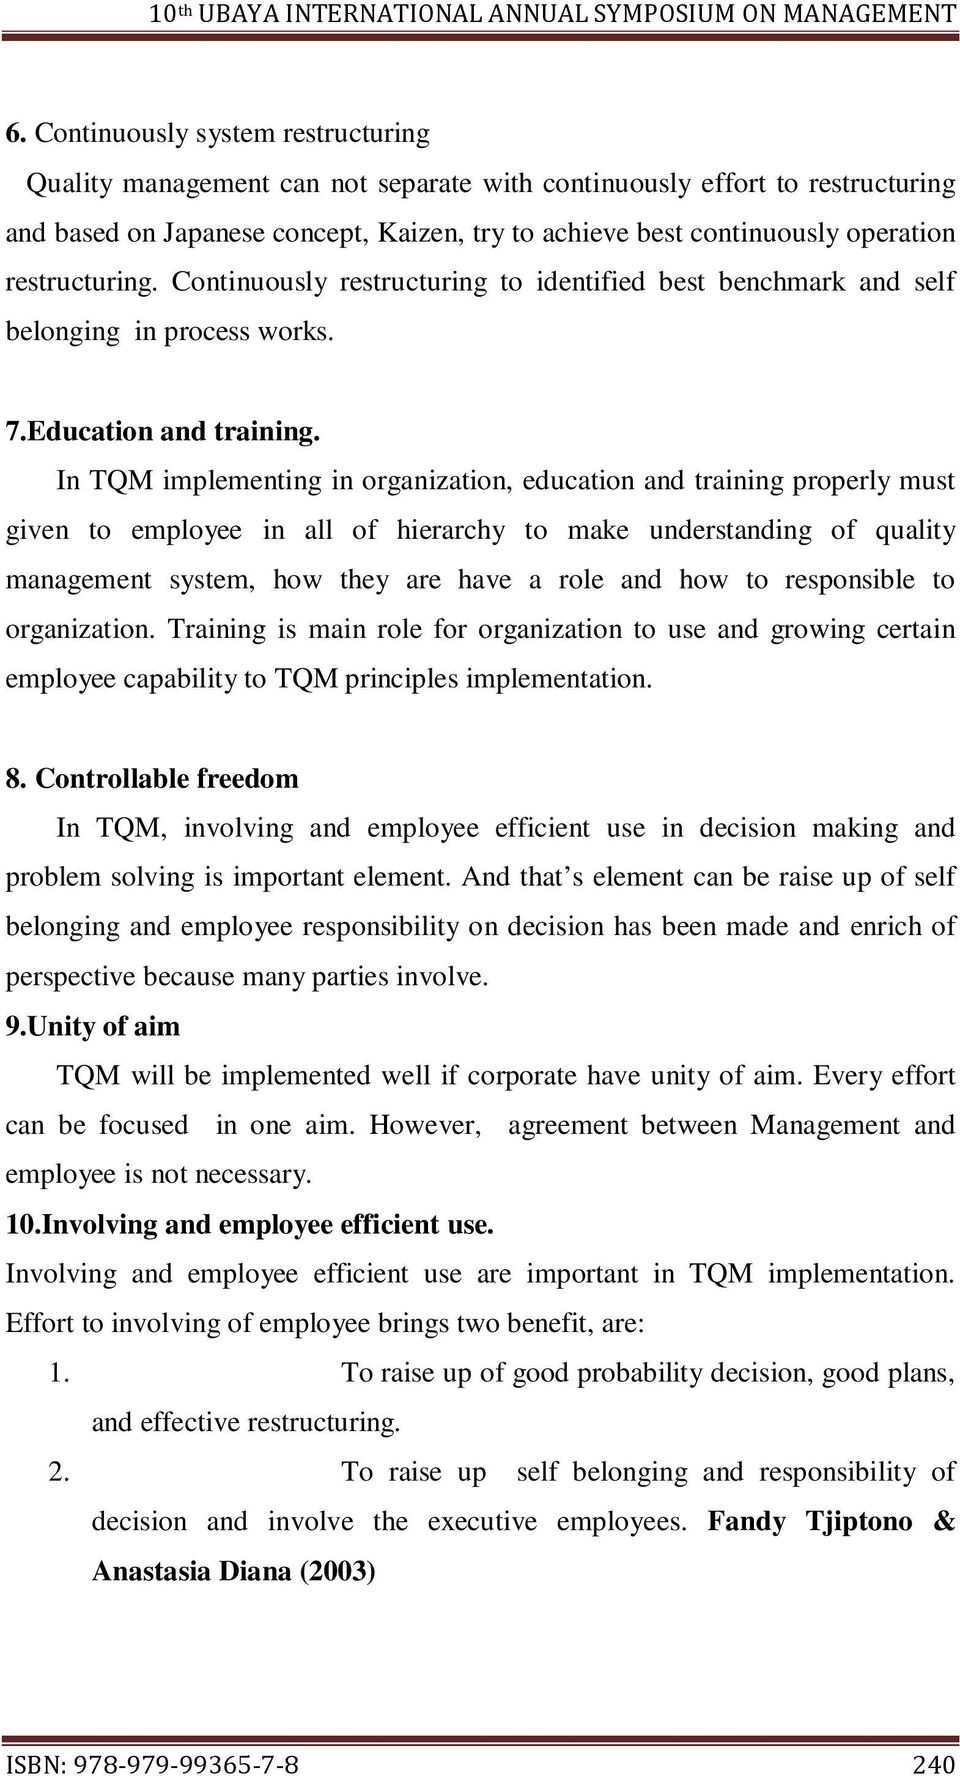 In TQM implementing in organization, education and training properly must given to employee in all of hierarchy to make understanding of quality management system, how they are have a role and how to